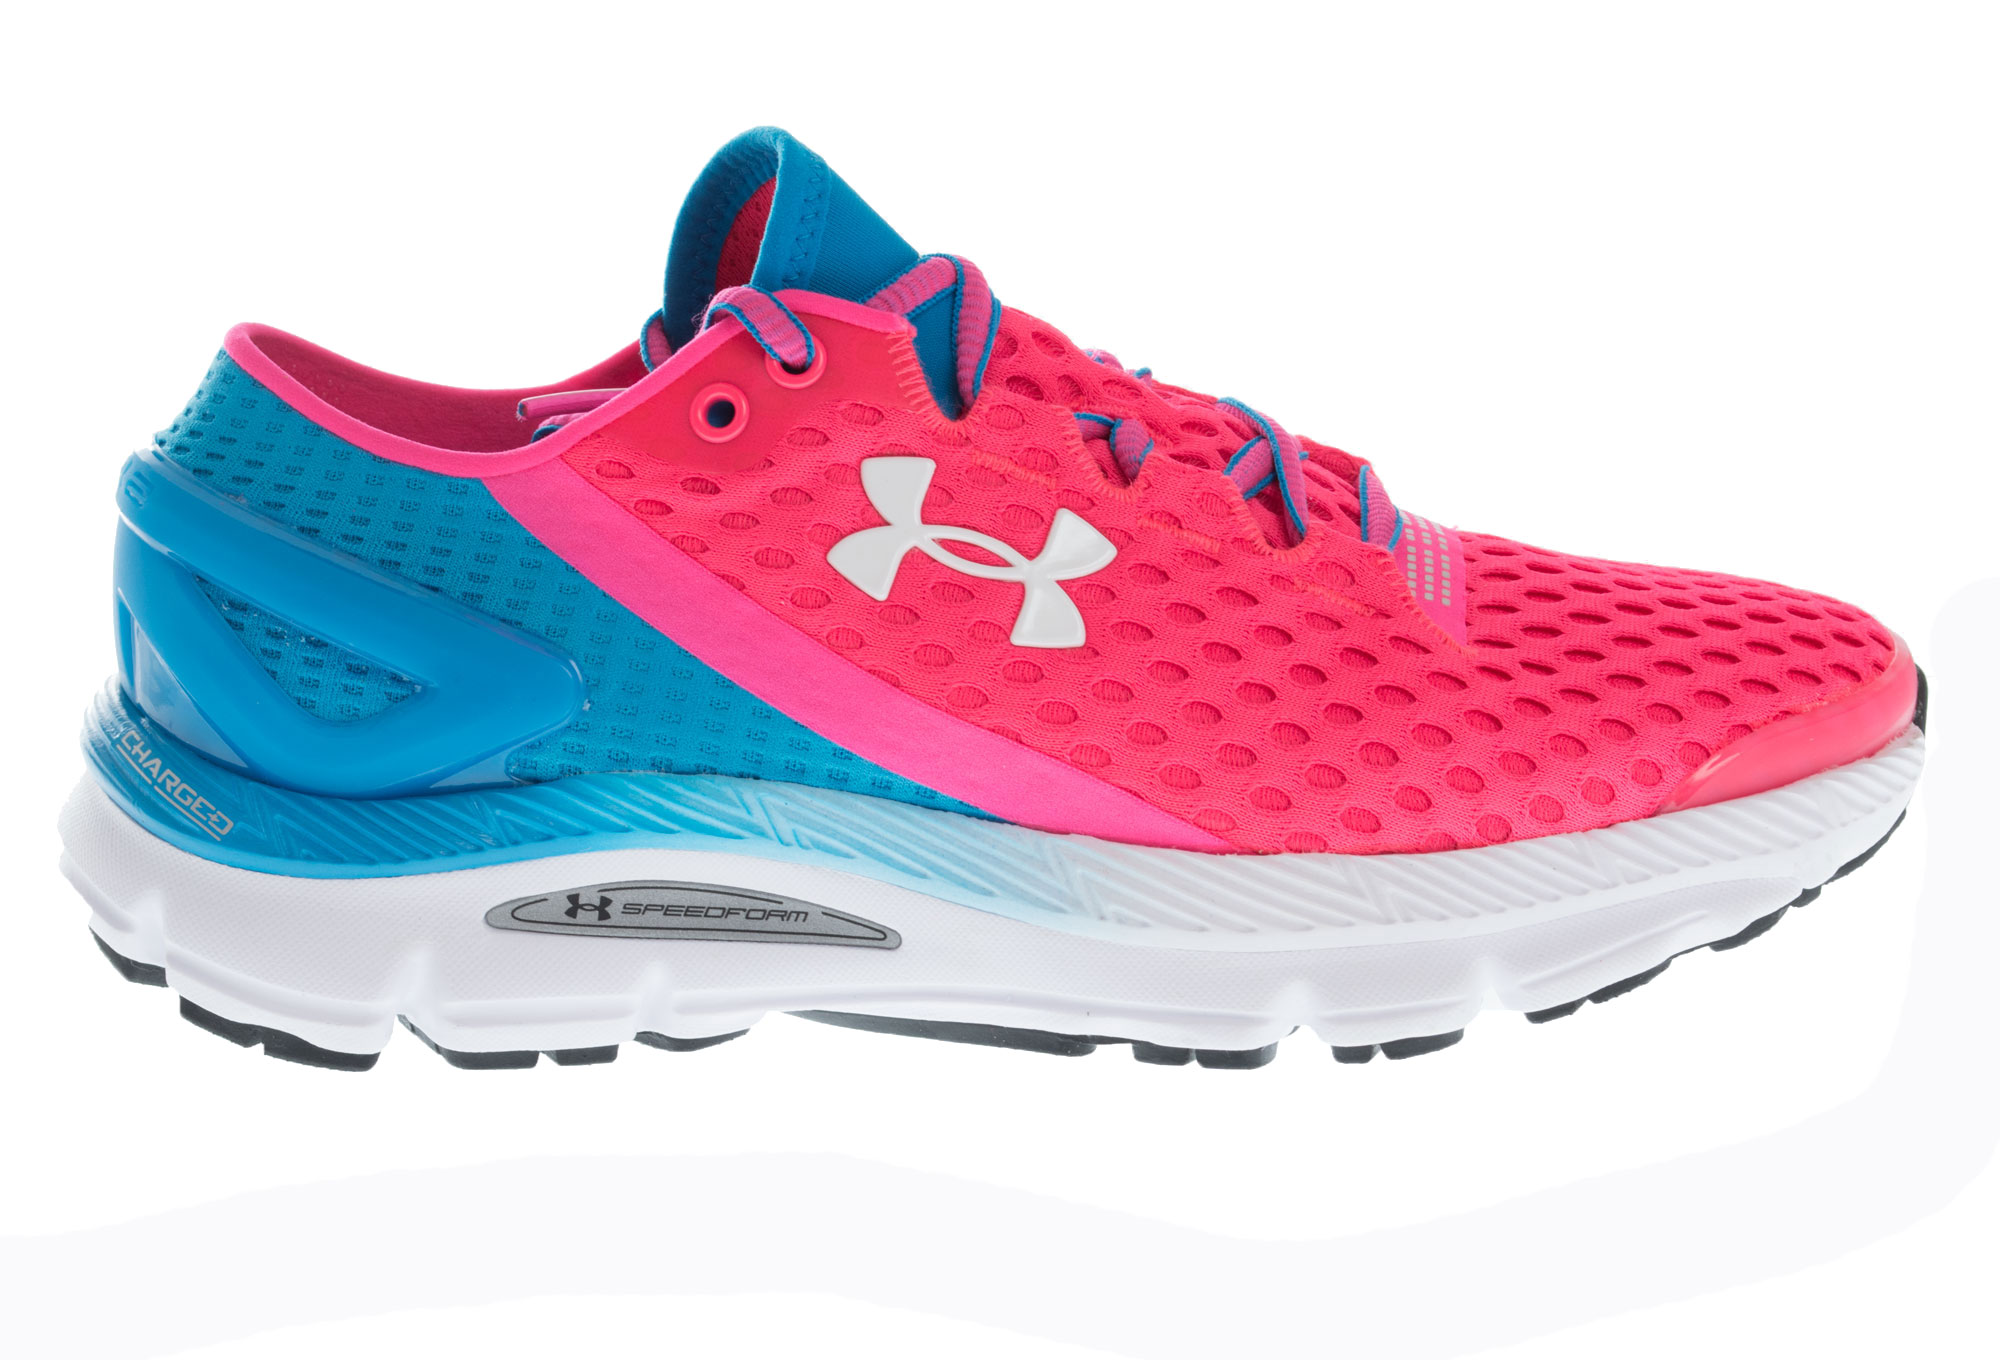 UNDER ARMOUR SPEEDFORM GEMINI 2 Pair of Shoes Pink Blue Women ... ce7a3ad21960